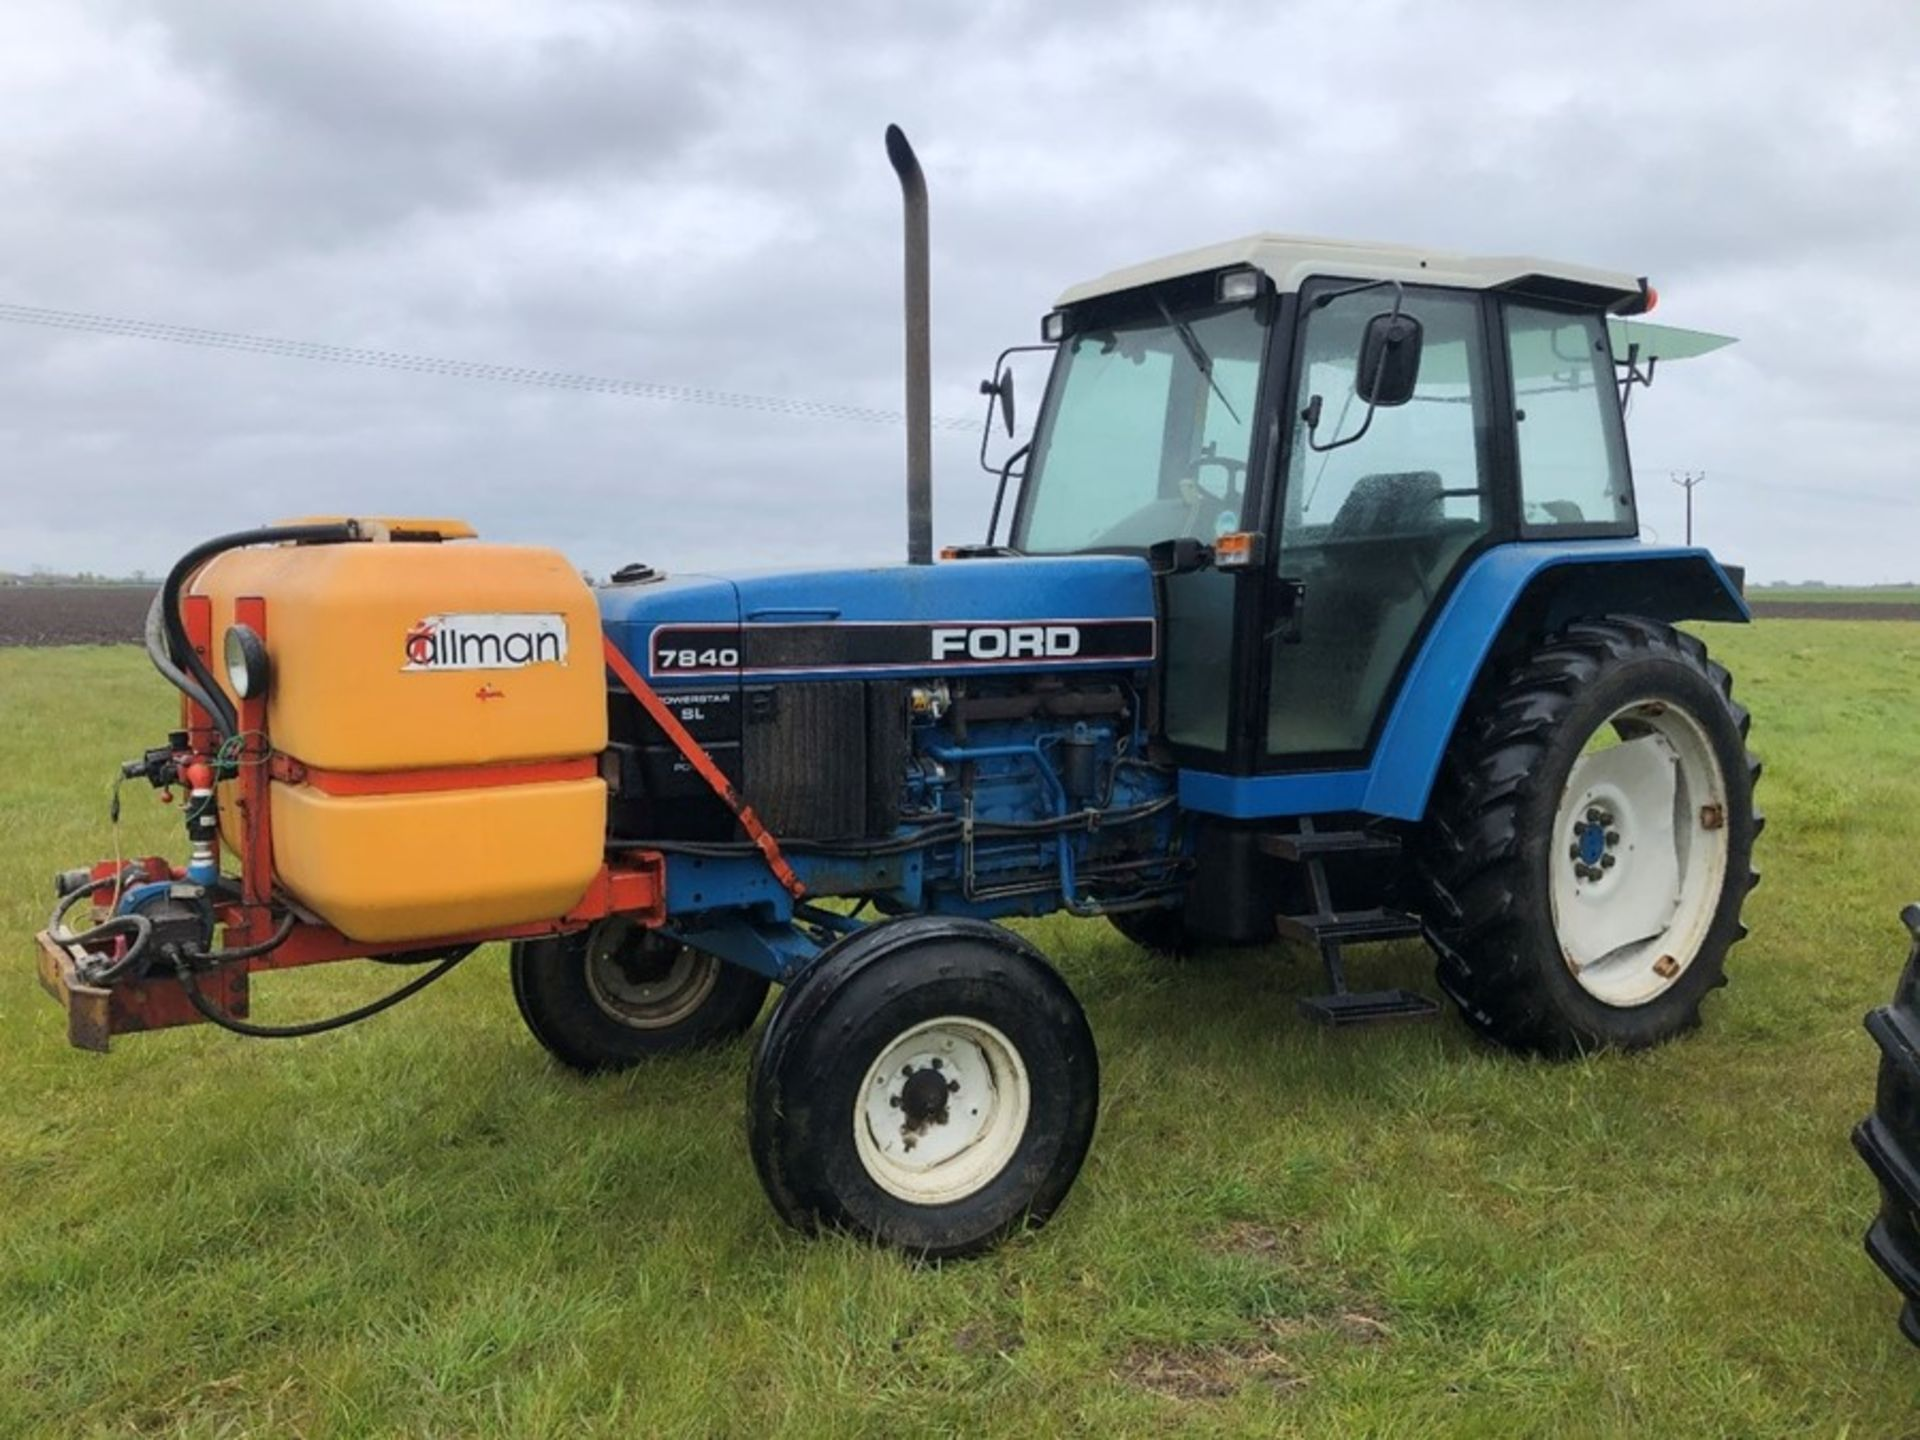 (94) Ford 7840 Powerstar SL 2wd tractor, 4,551 hours, dual power. air con, Reg L56 UVL, Rear 13.6 - Image 7 of 11